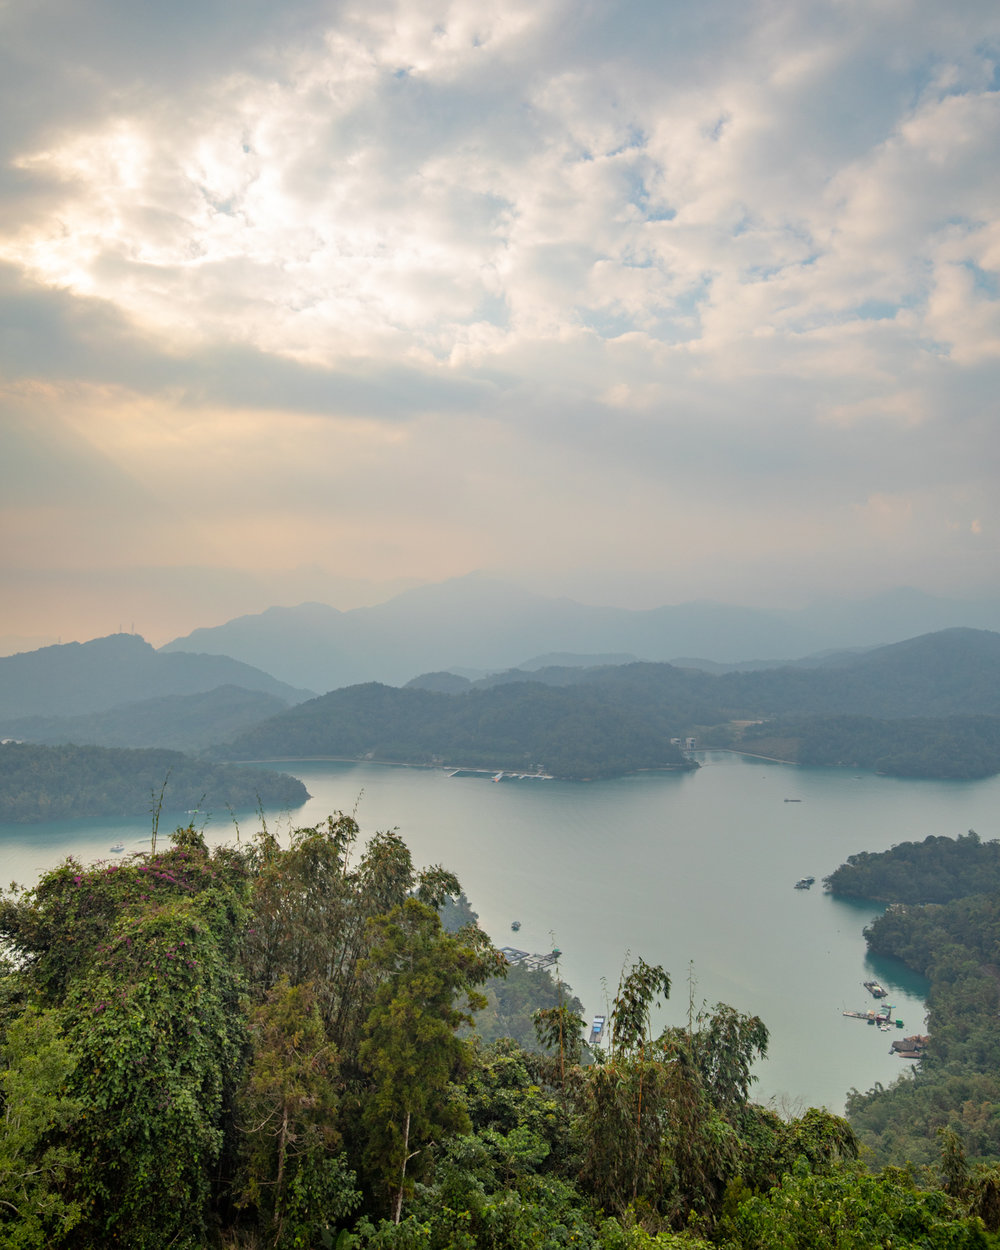 The view from the top of Cien Pagoda in Sun Moon Lake